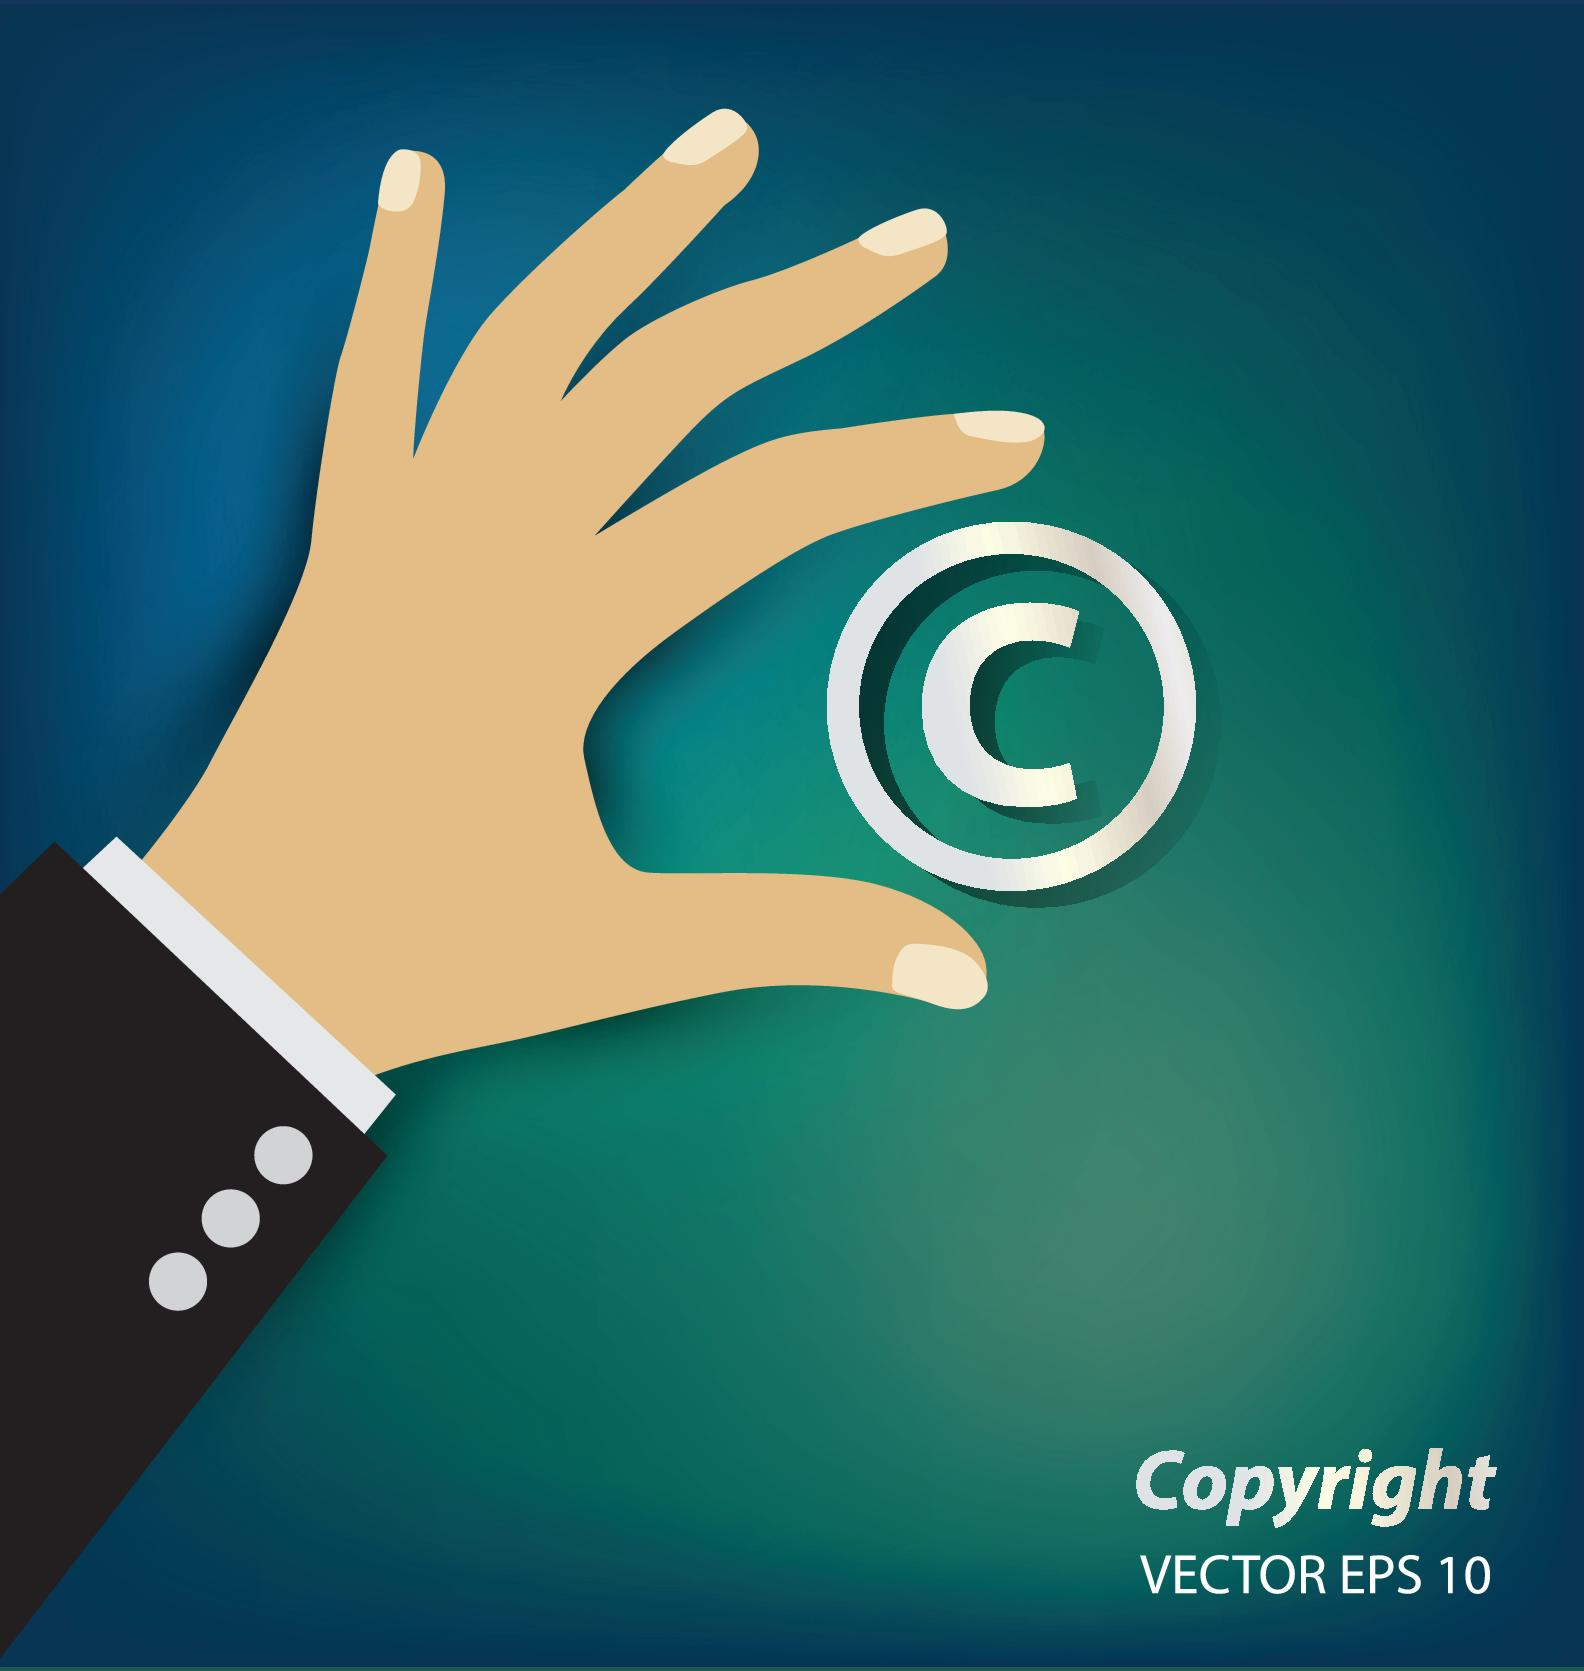 creative copyright business